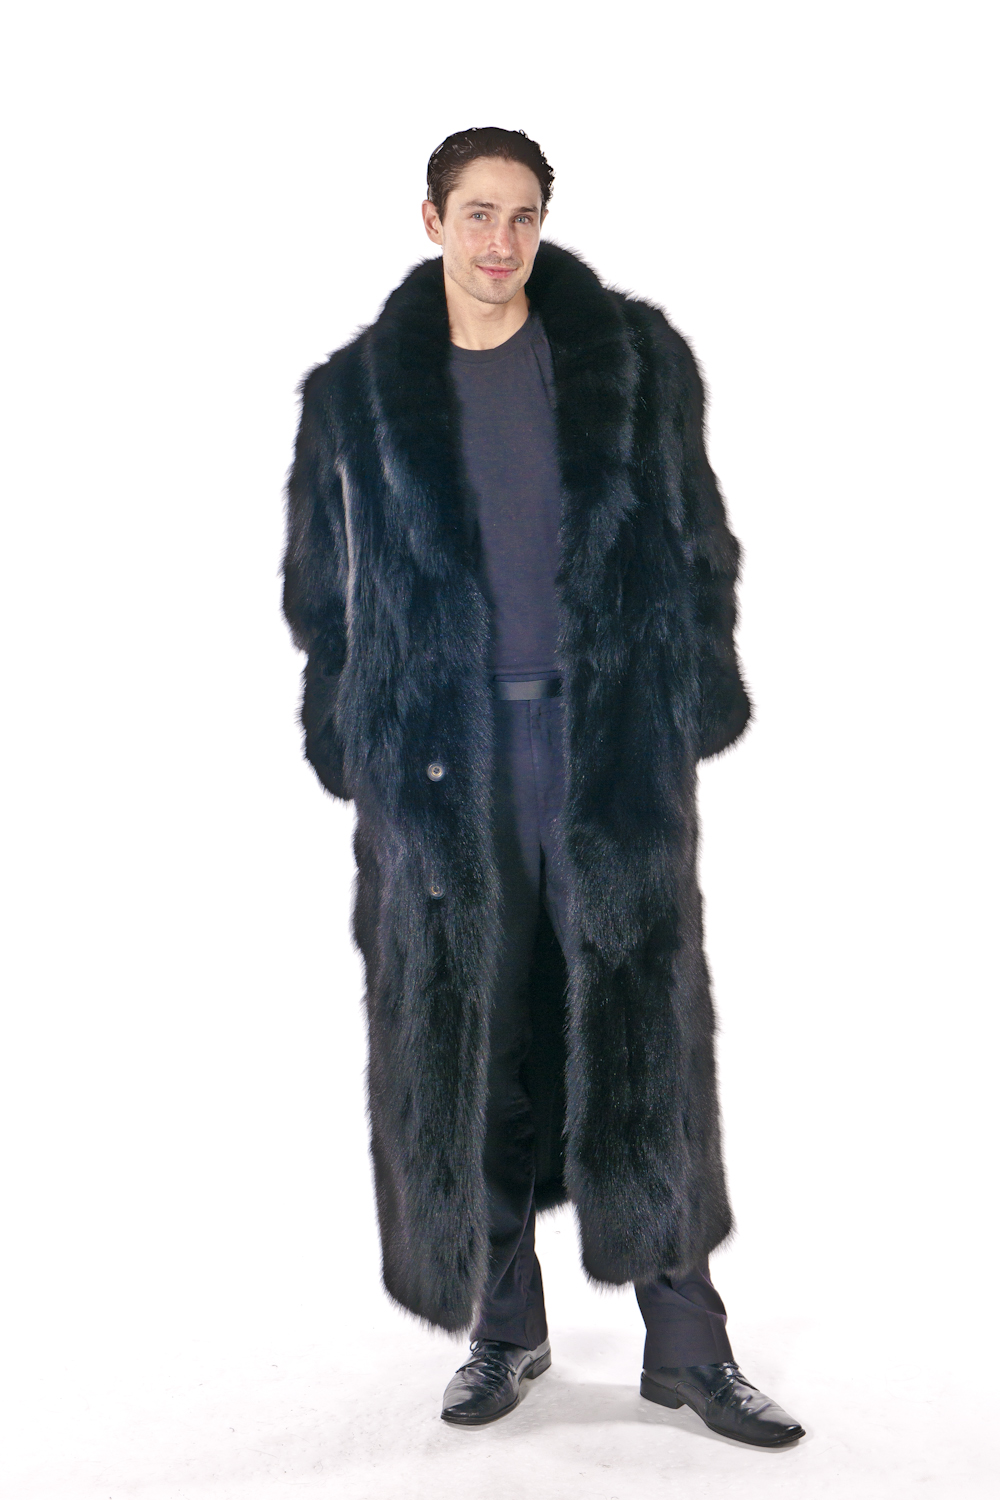 dfd6c6cb5f Mens Fox Coat – Black Sculptured Fox | Madison Avenue Mall Furs ...